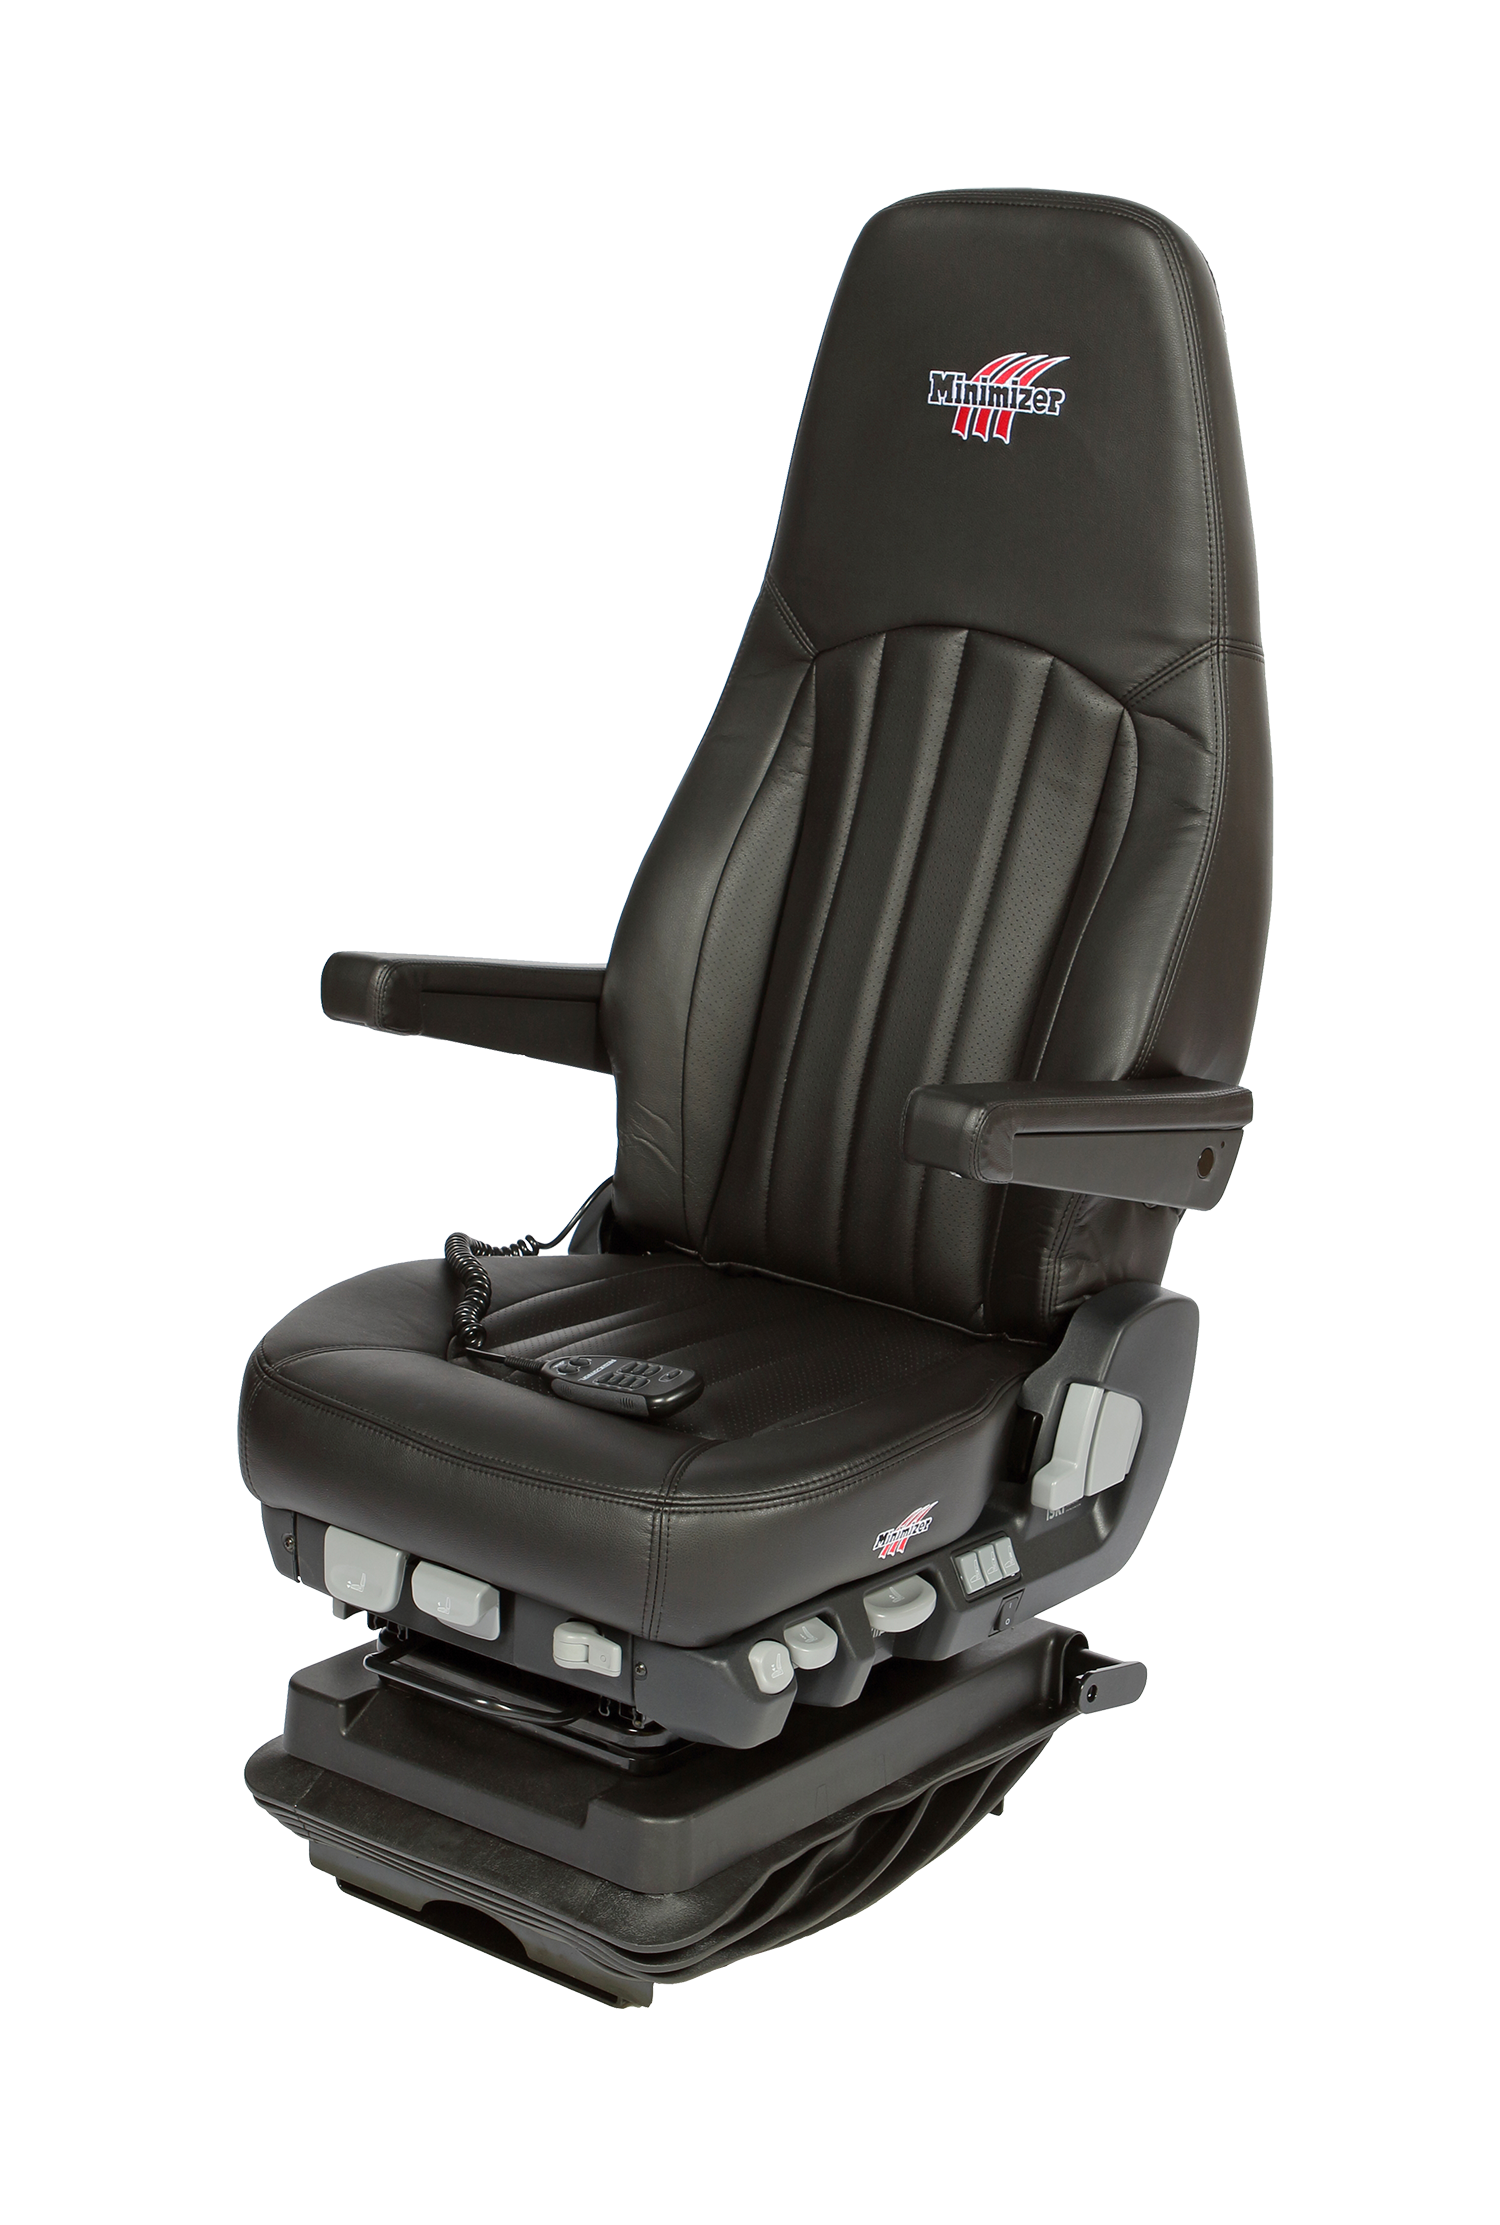 Minimizer Heavy Duty Semi Truck Seats - Ultra Leather Heat and Cool